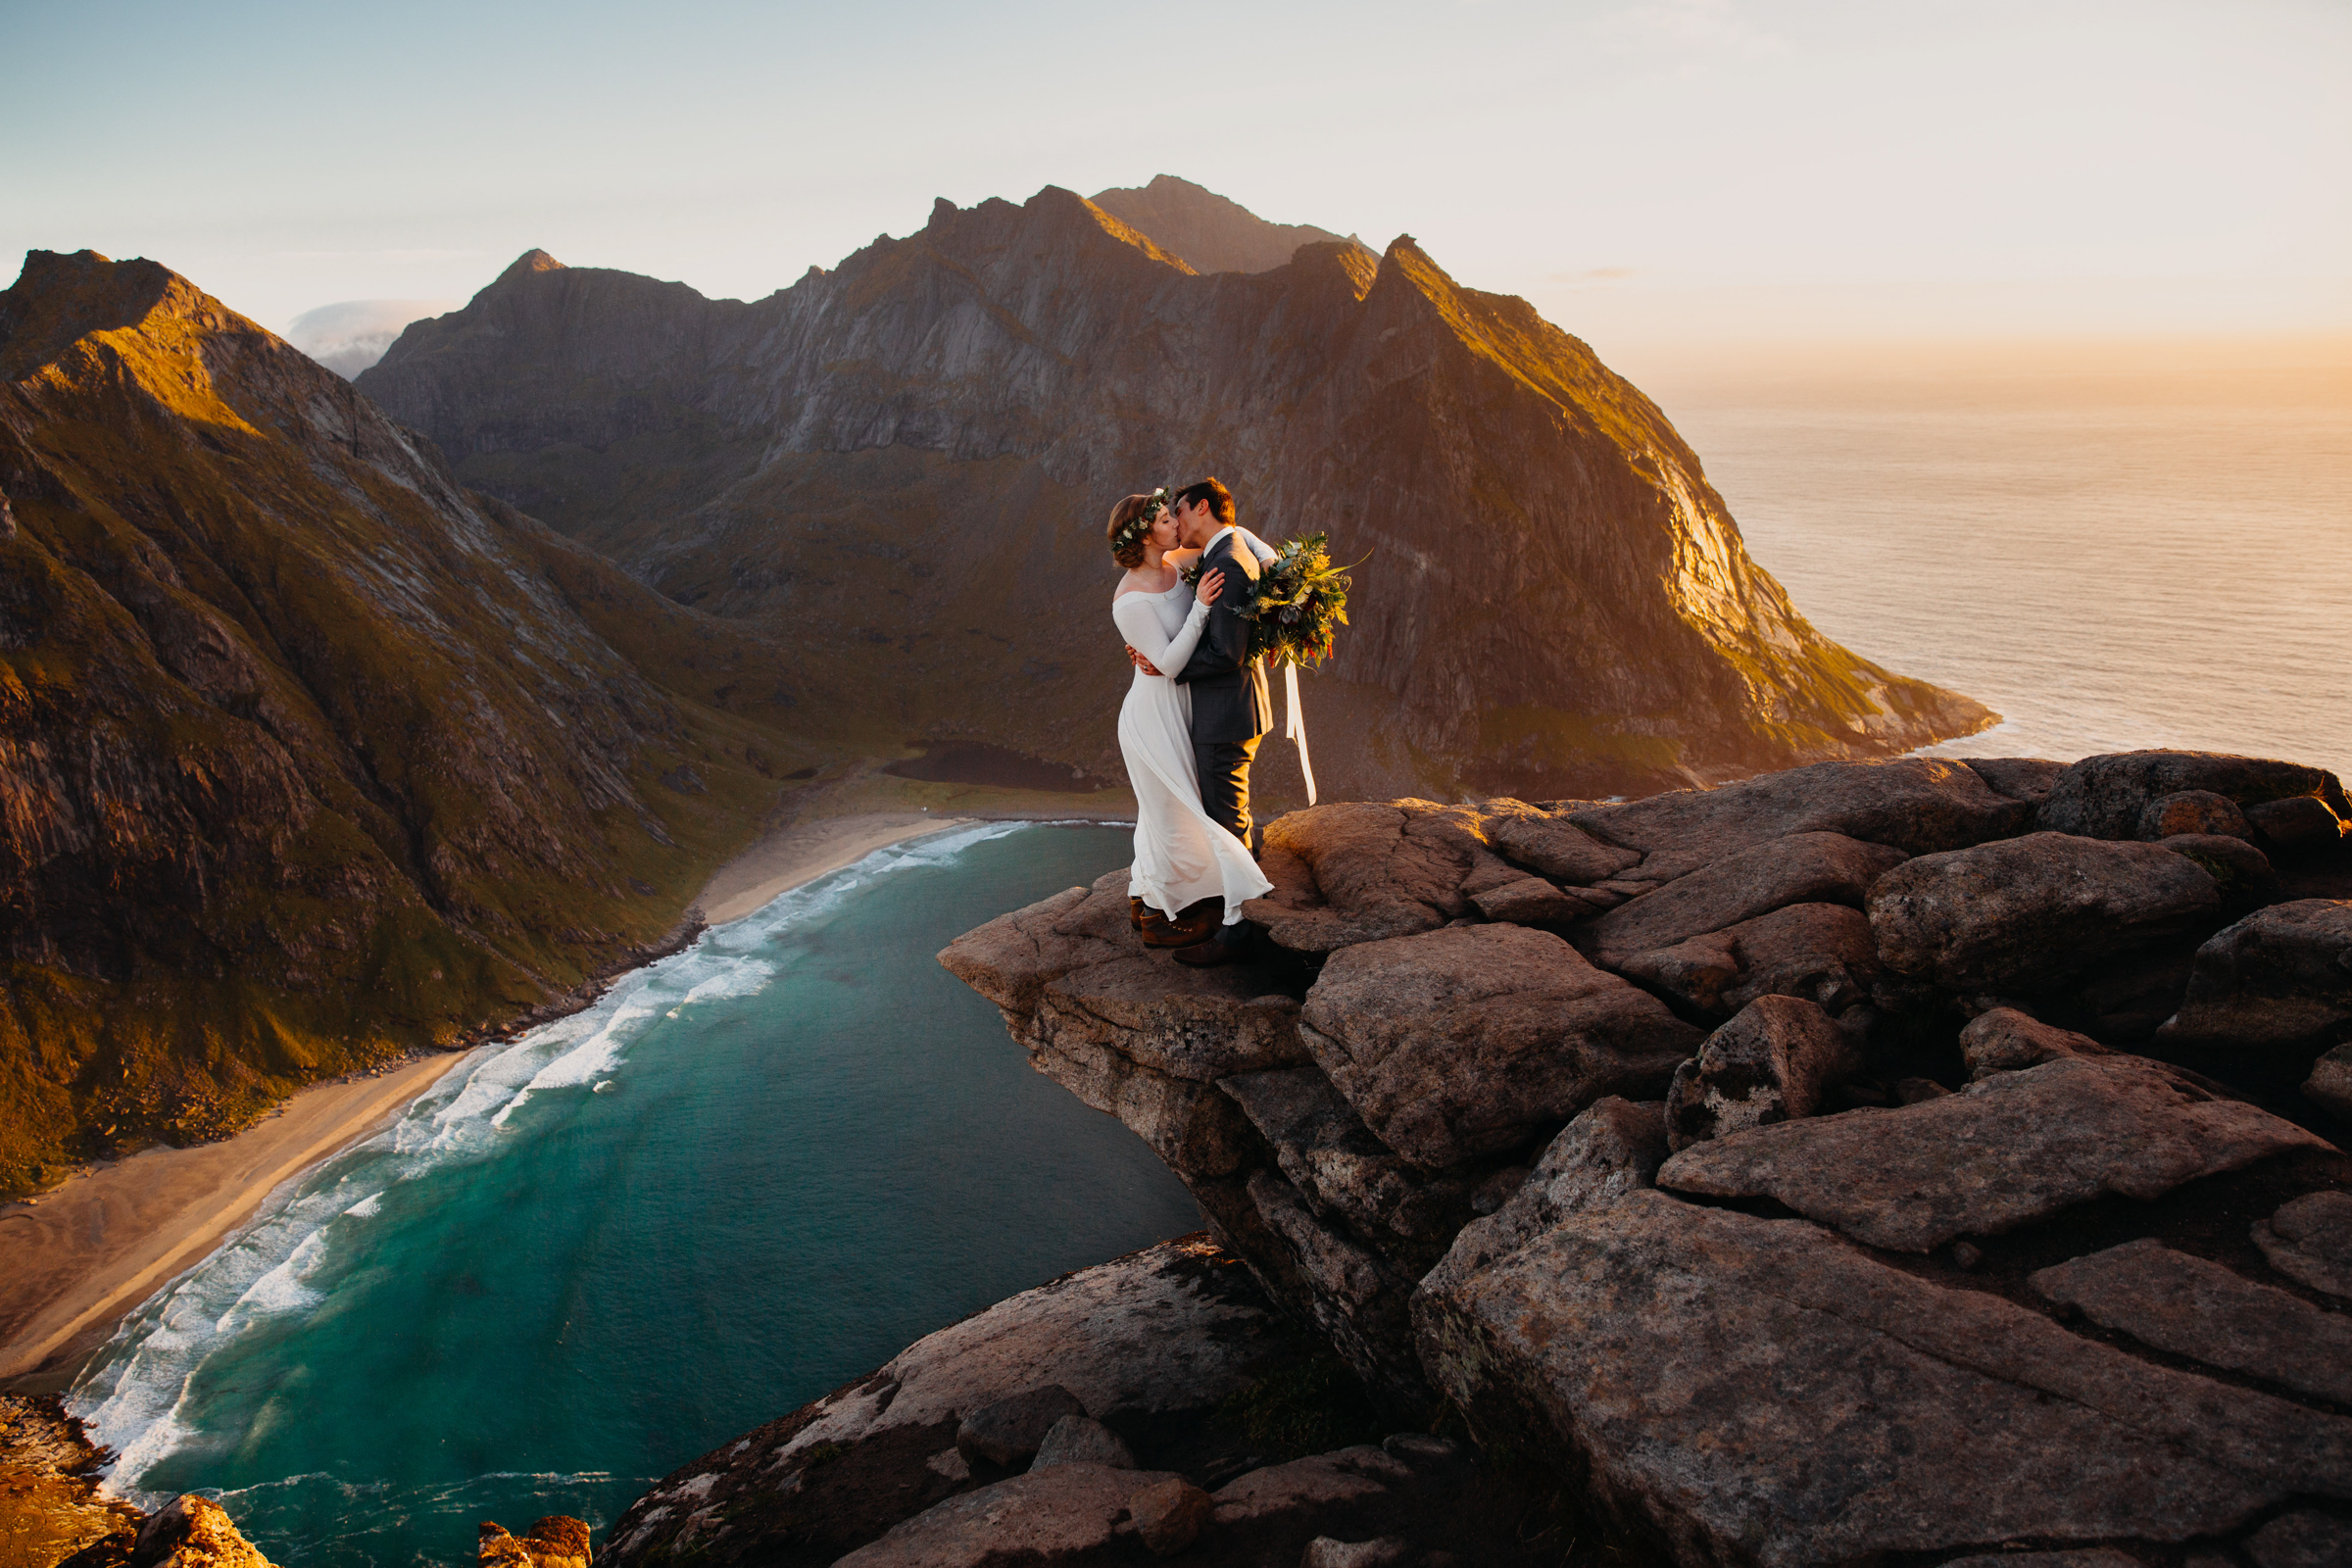 Couple on precipice against mountains and sea at Lofoten Norway - photo by Christin Eide Photography